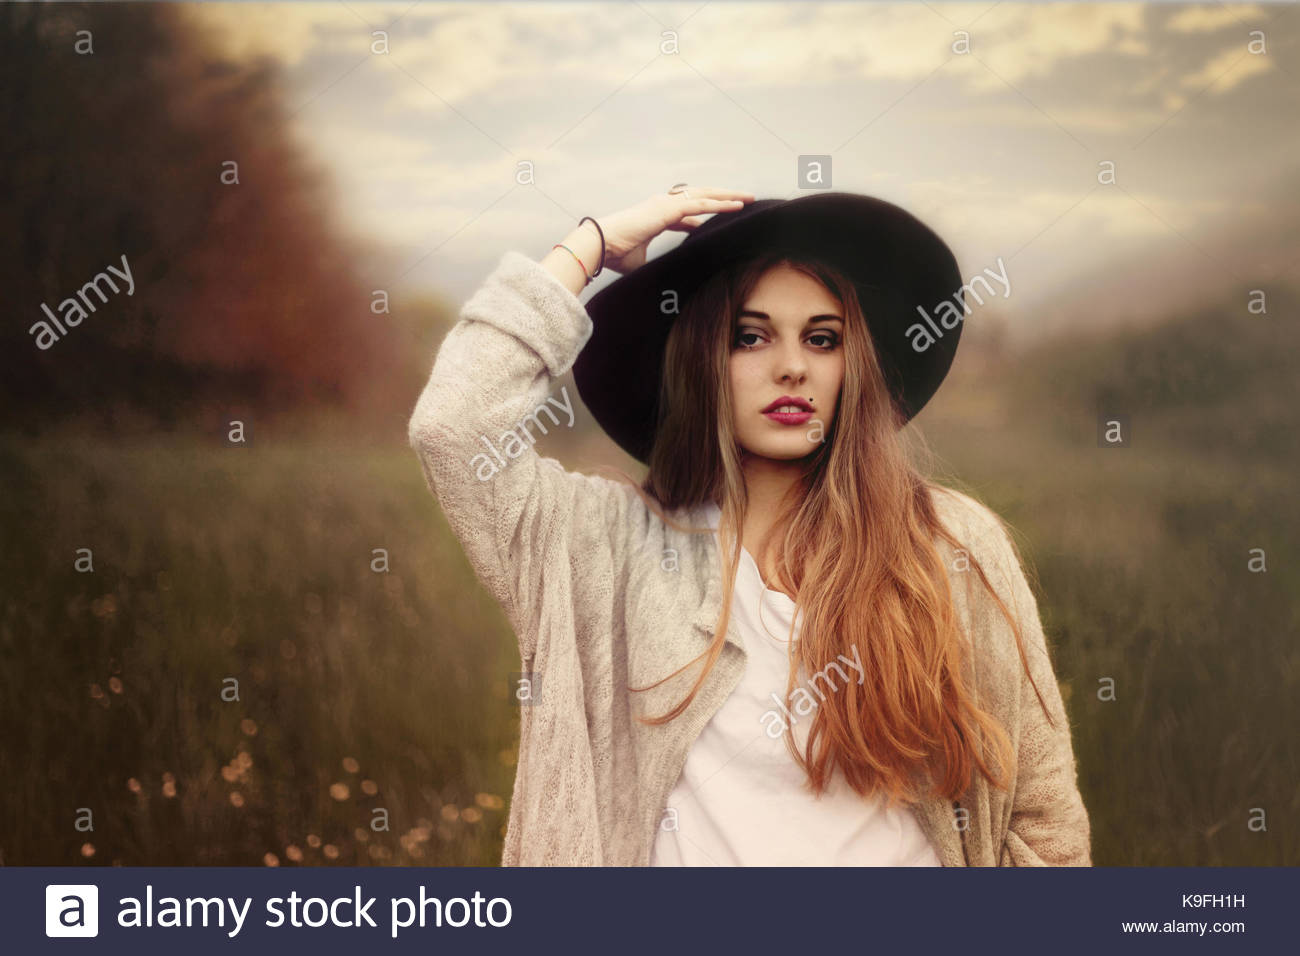 Lady in a field - Stock Image